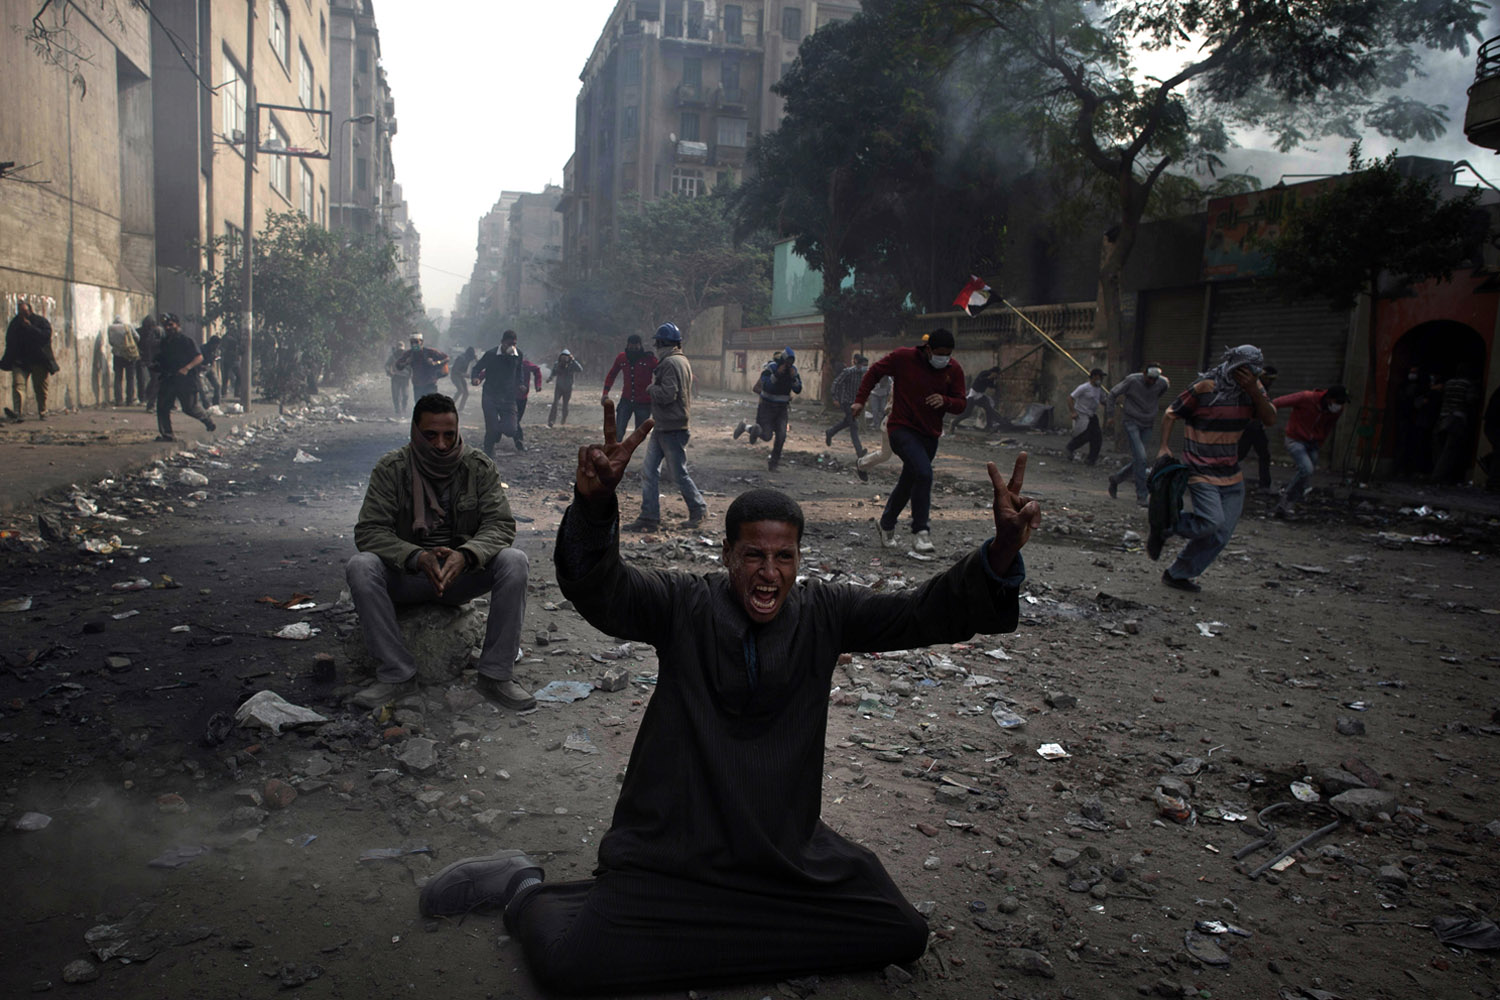 Nov. 22, 2011. Egyptians frustrated by army rule battle police in Cairo streets as the military struggled to cope with the challenge to its authority that has jolted plans for the country's first free election in decades.